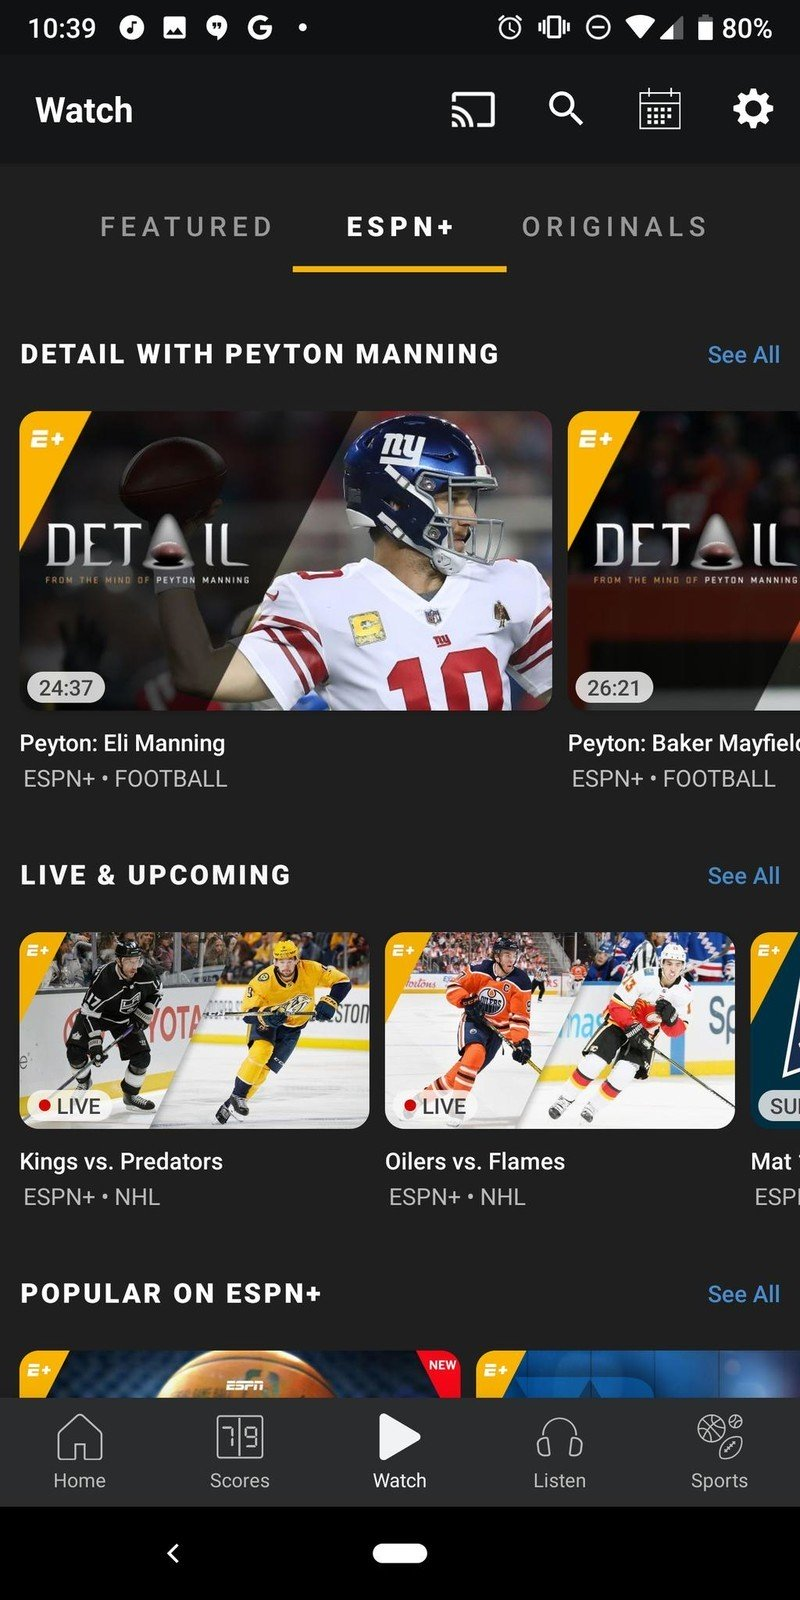 espn_app_plus_watch_tab-417s.jpg